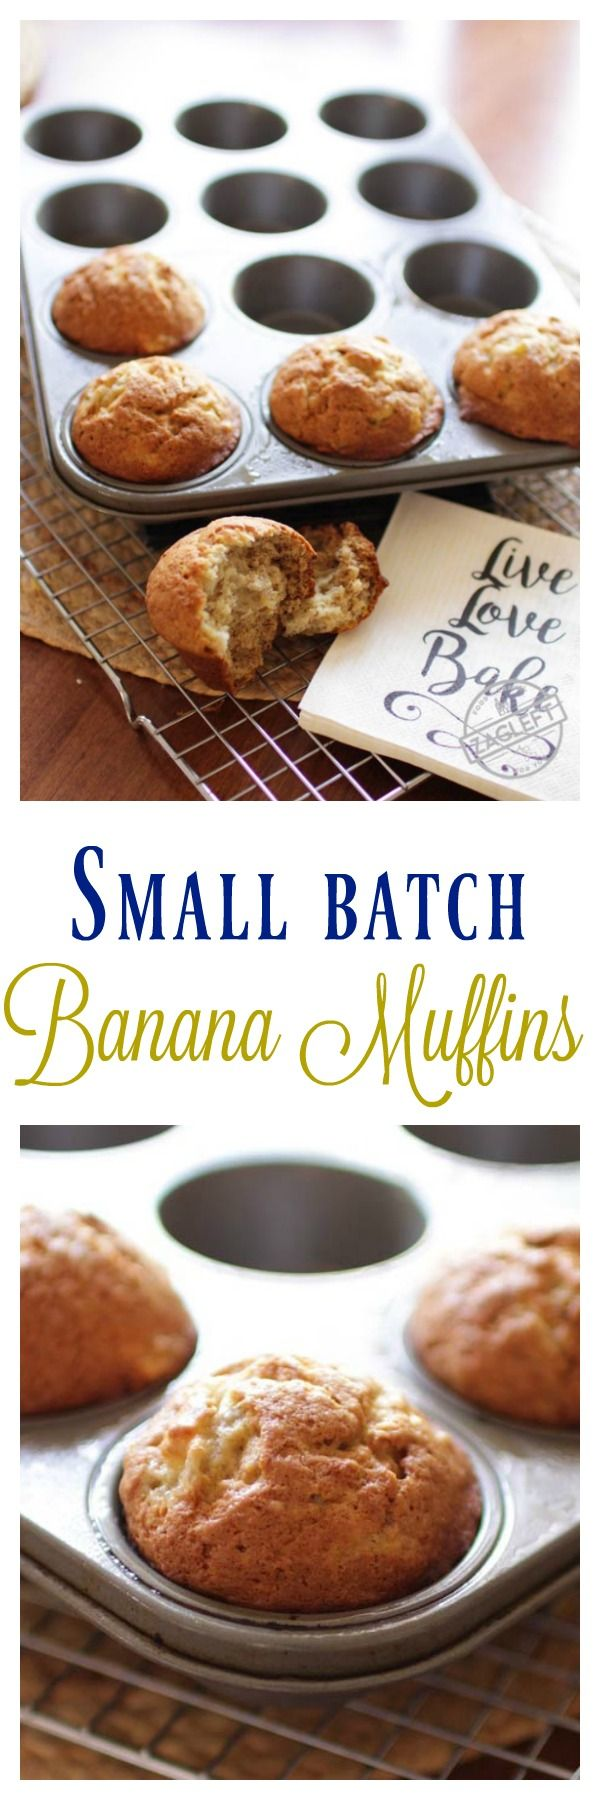 Small Batch Banana Muffins, the perfect amount if you're cooking for one or two. These tender, sweet muffins are perfect for breakfast, snacking or dessert. MAKES 5-6 BANANA MUFFINS | zagleft.